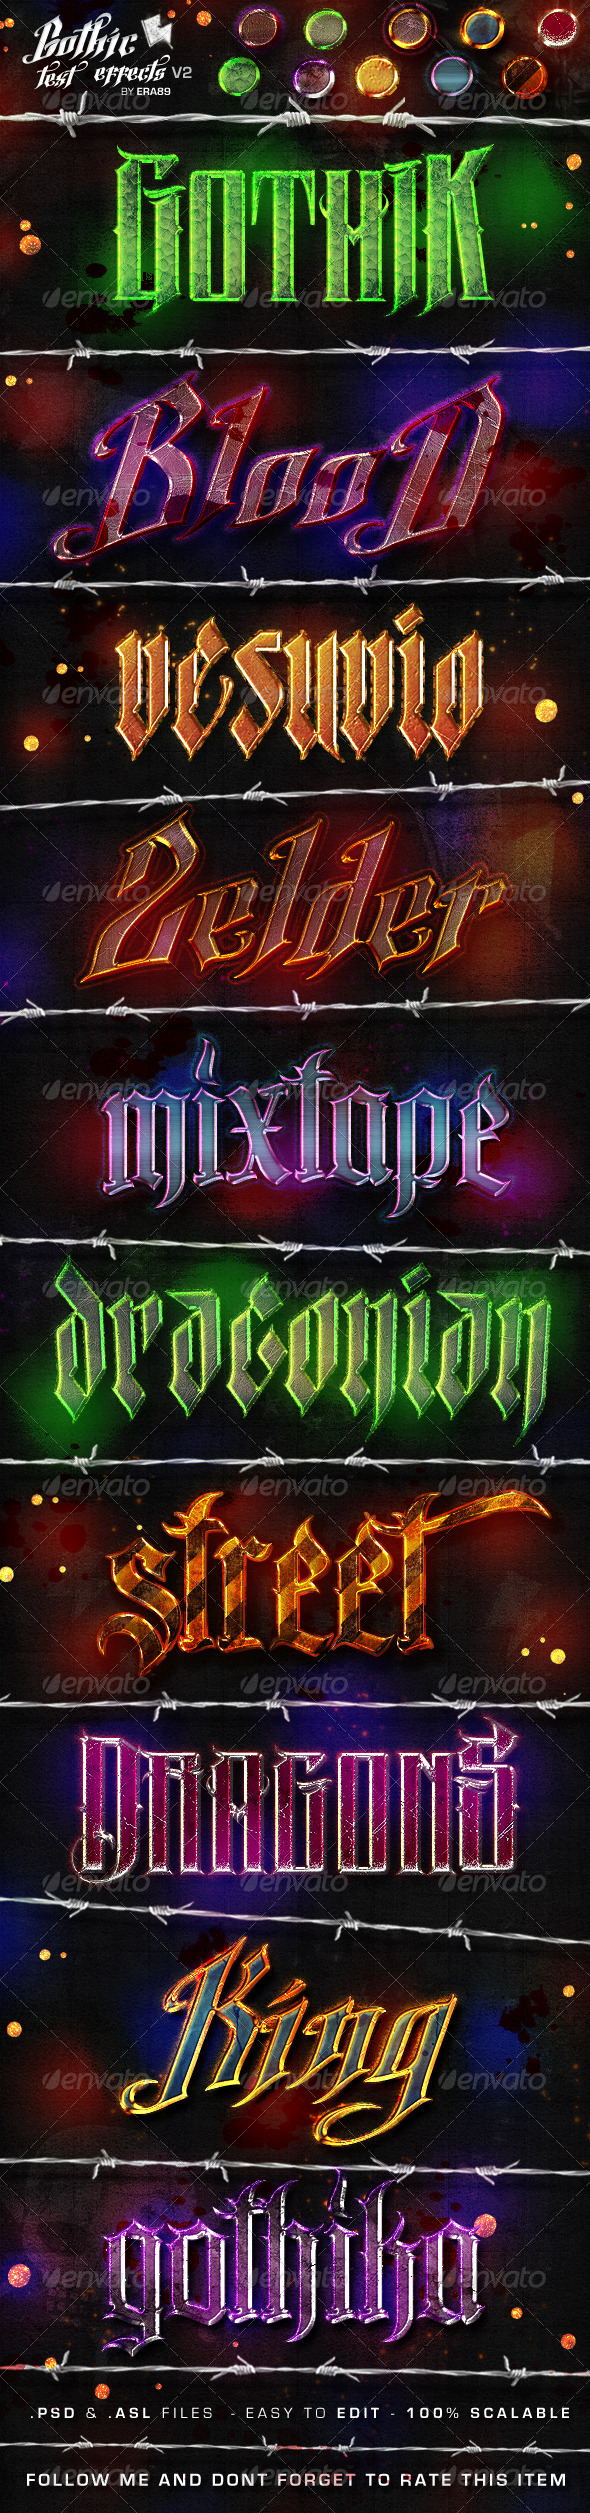 GraphicRiver Gothic Text Effects v2 Photoshop Styles 4615374